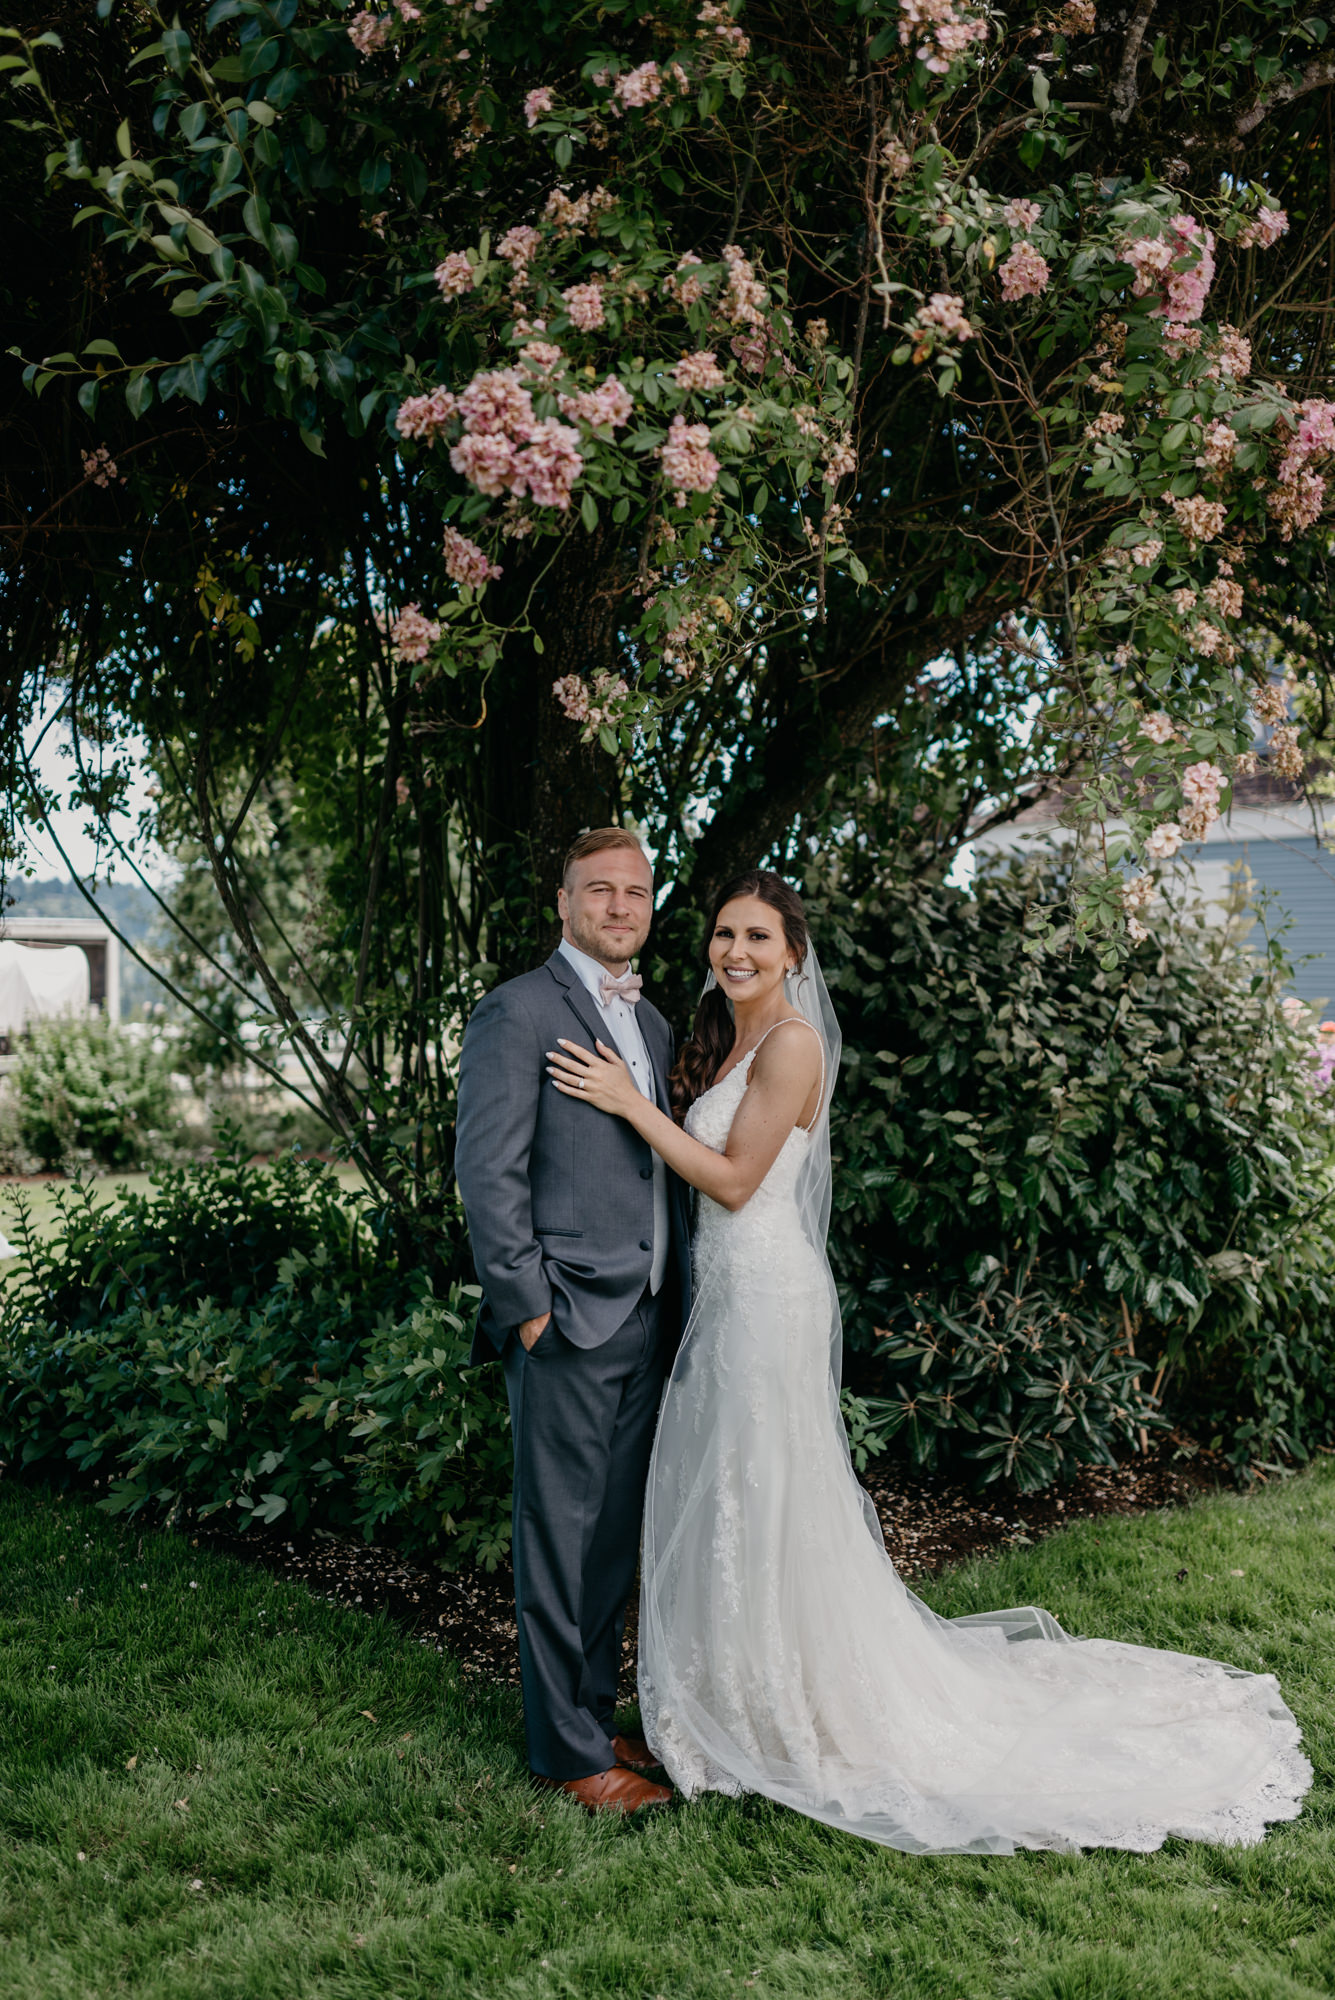 76-lake-oswego-wedding-portland-couple-rose-tree.jpg